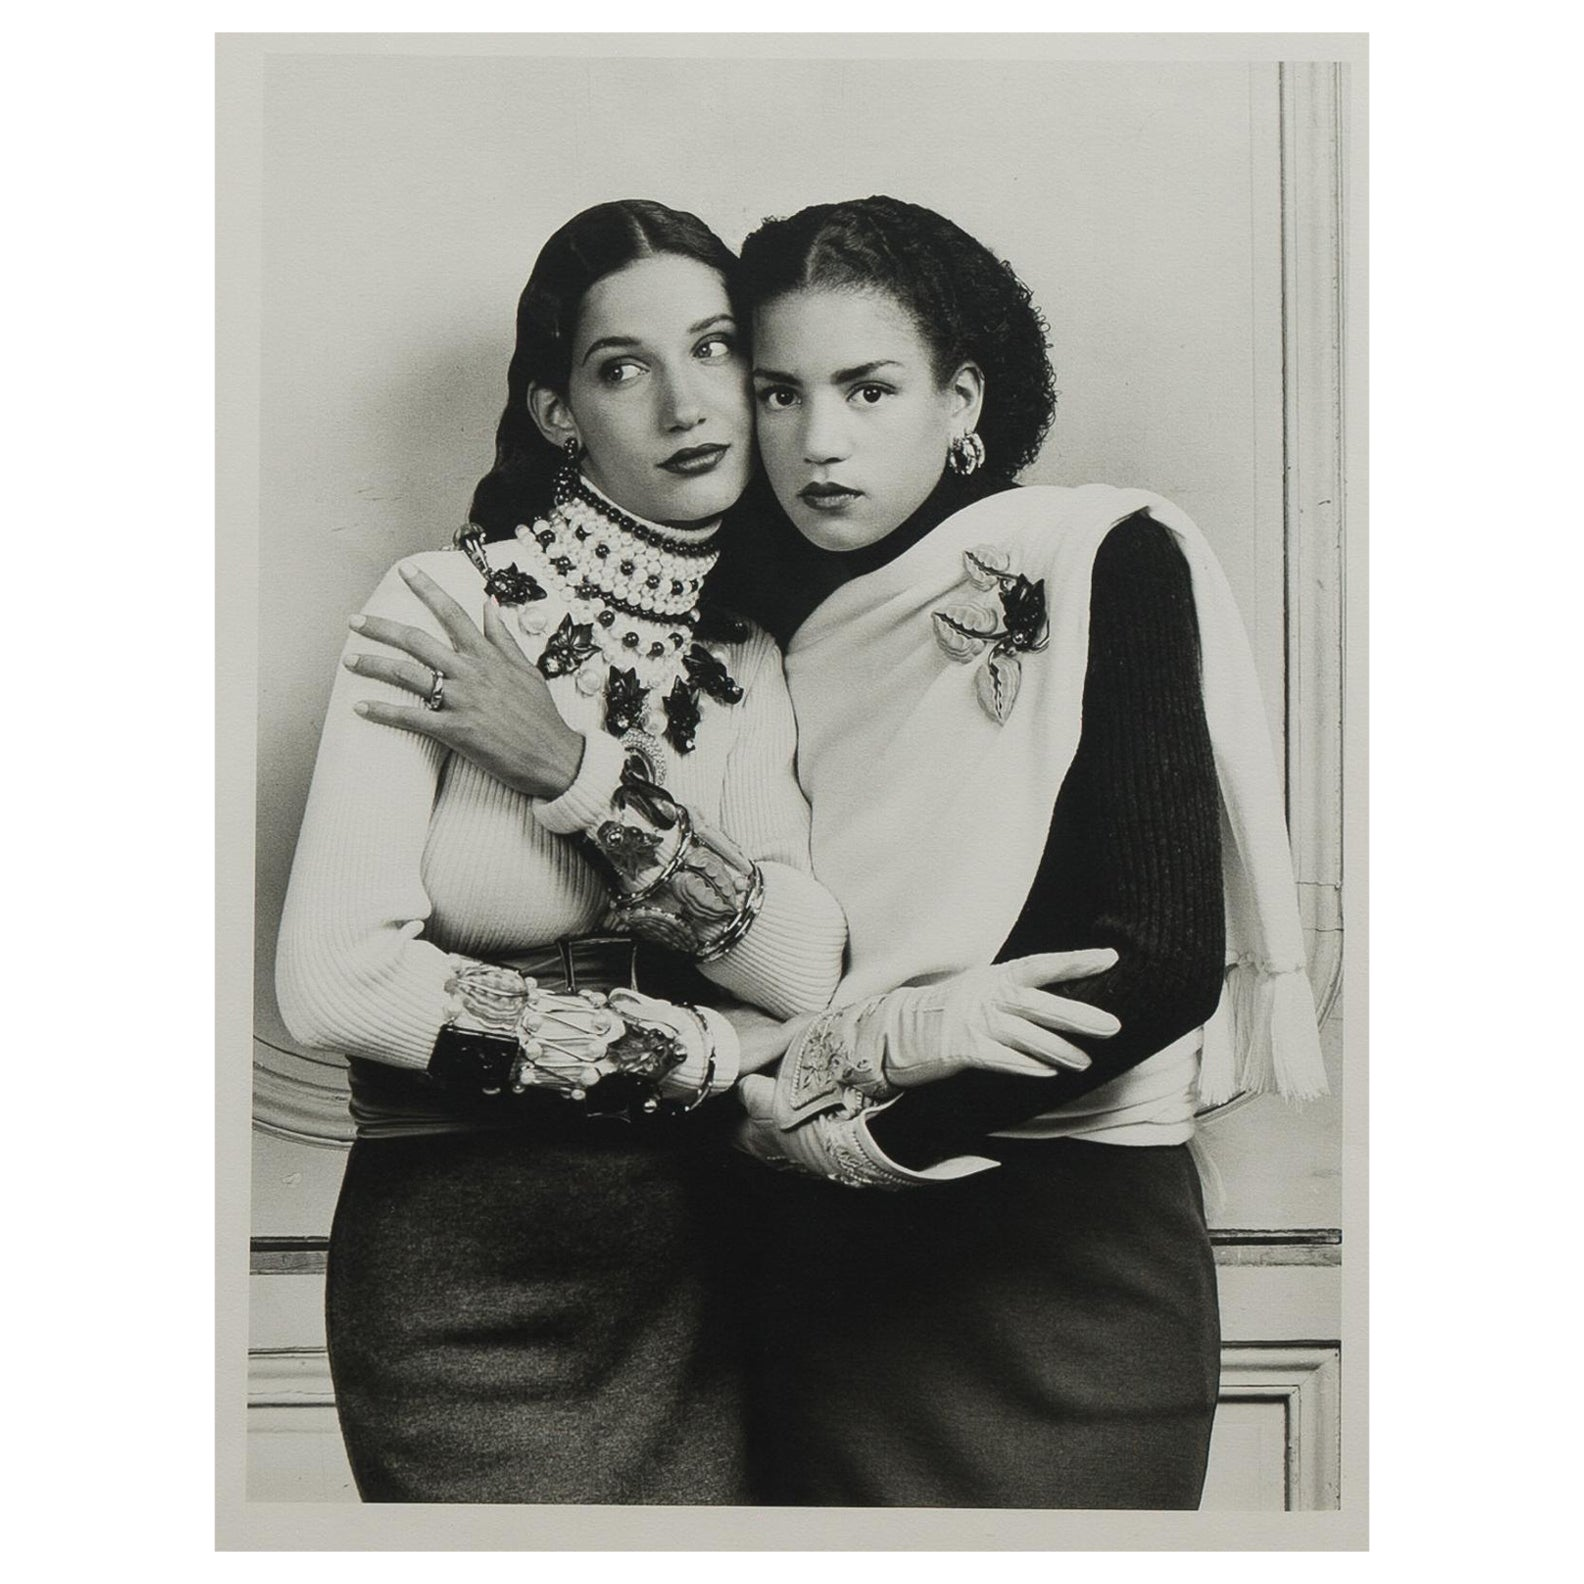 Original Photograph of Two Models by Karl Lagerfeld